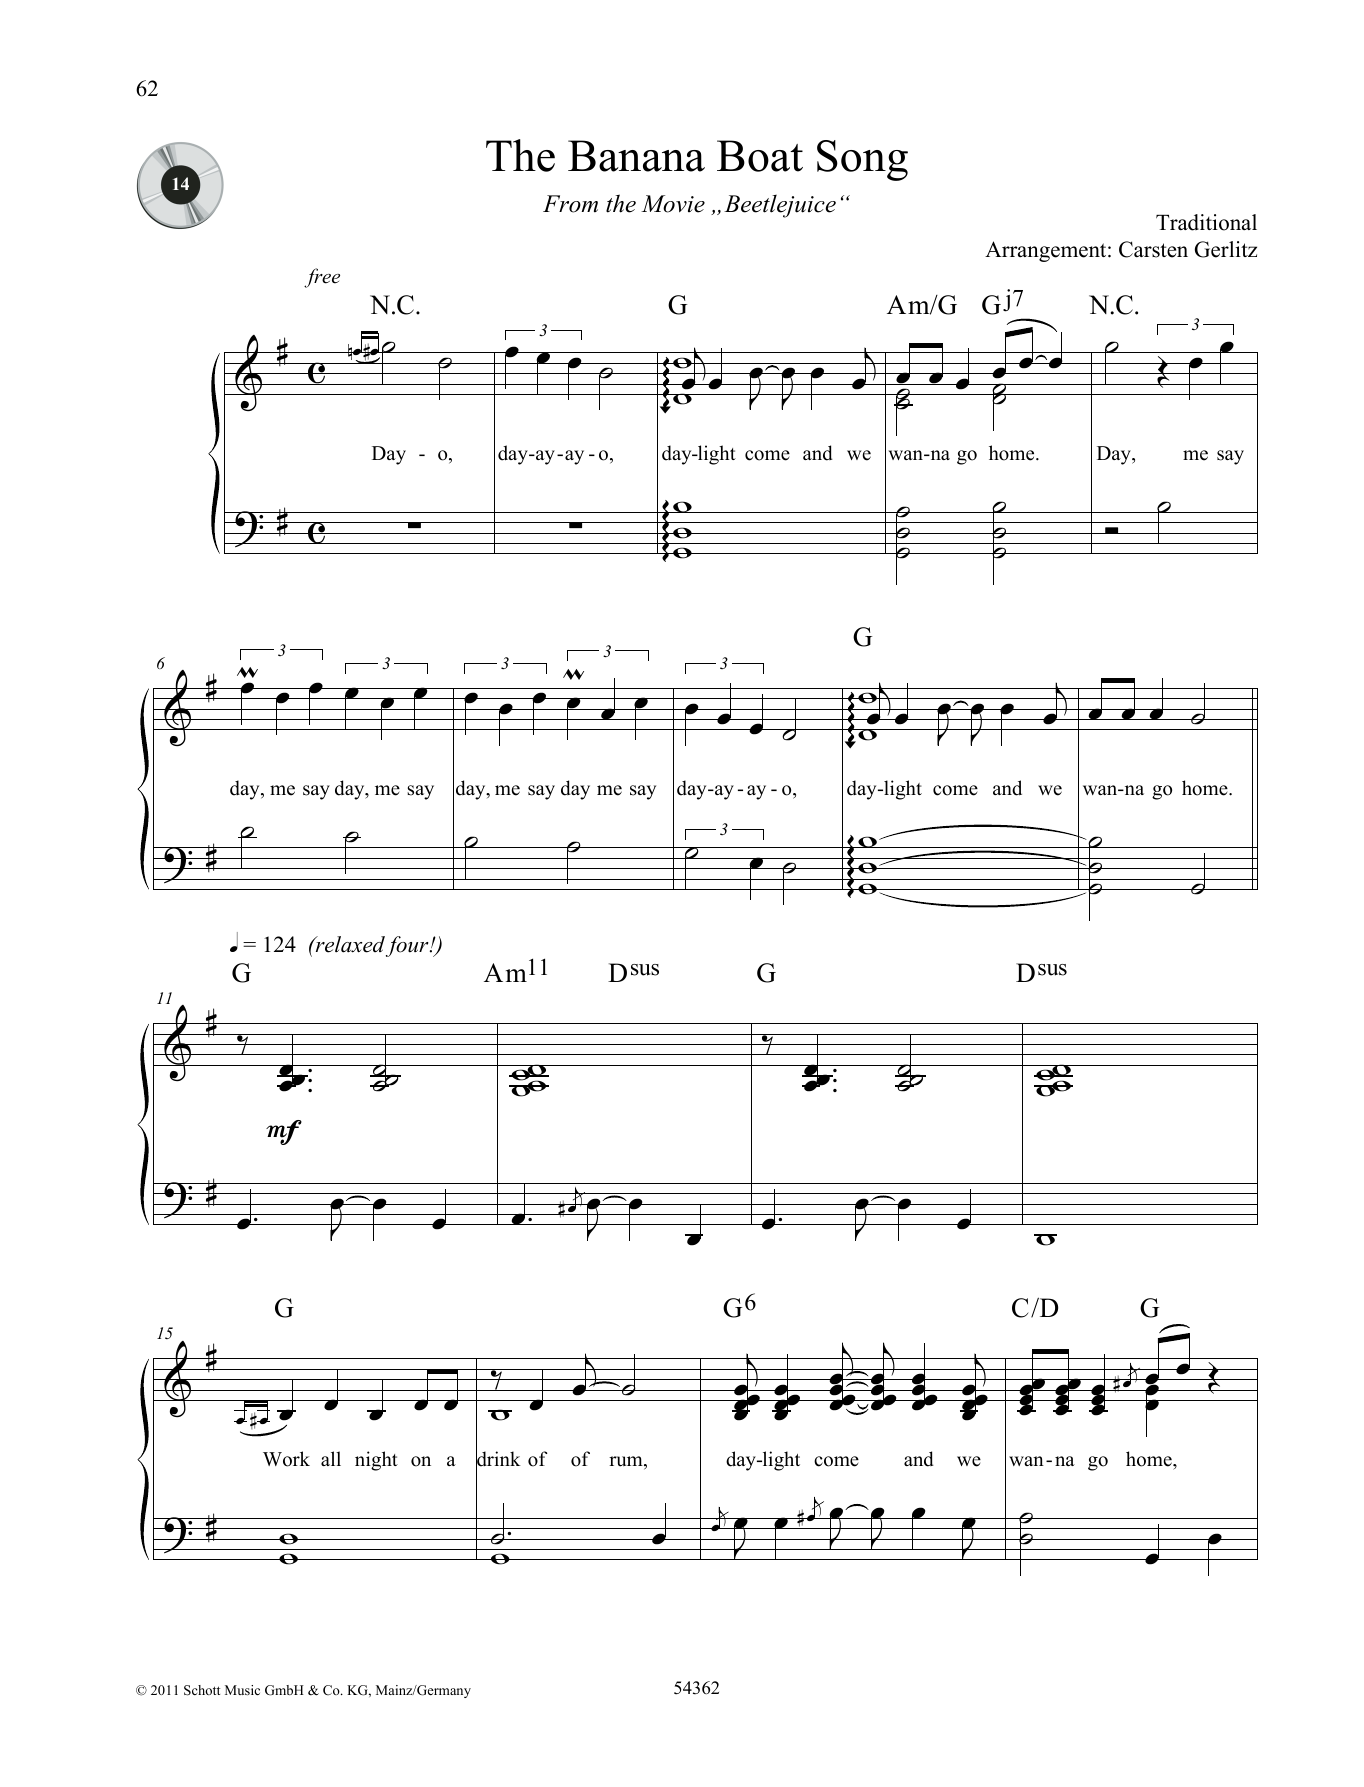 The Banana Boat Song Sheet Music